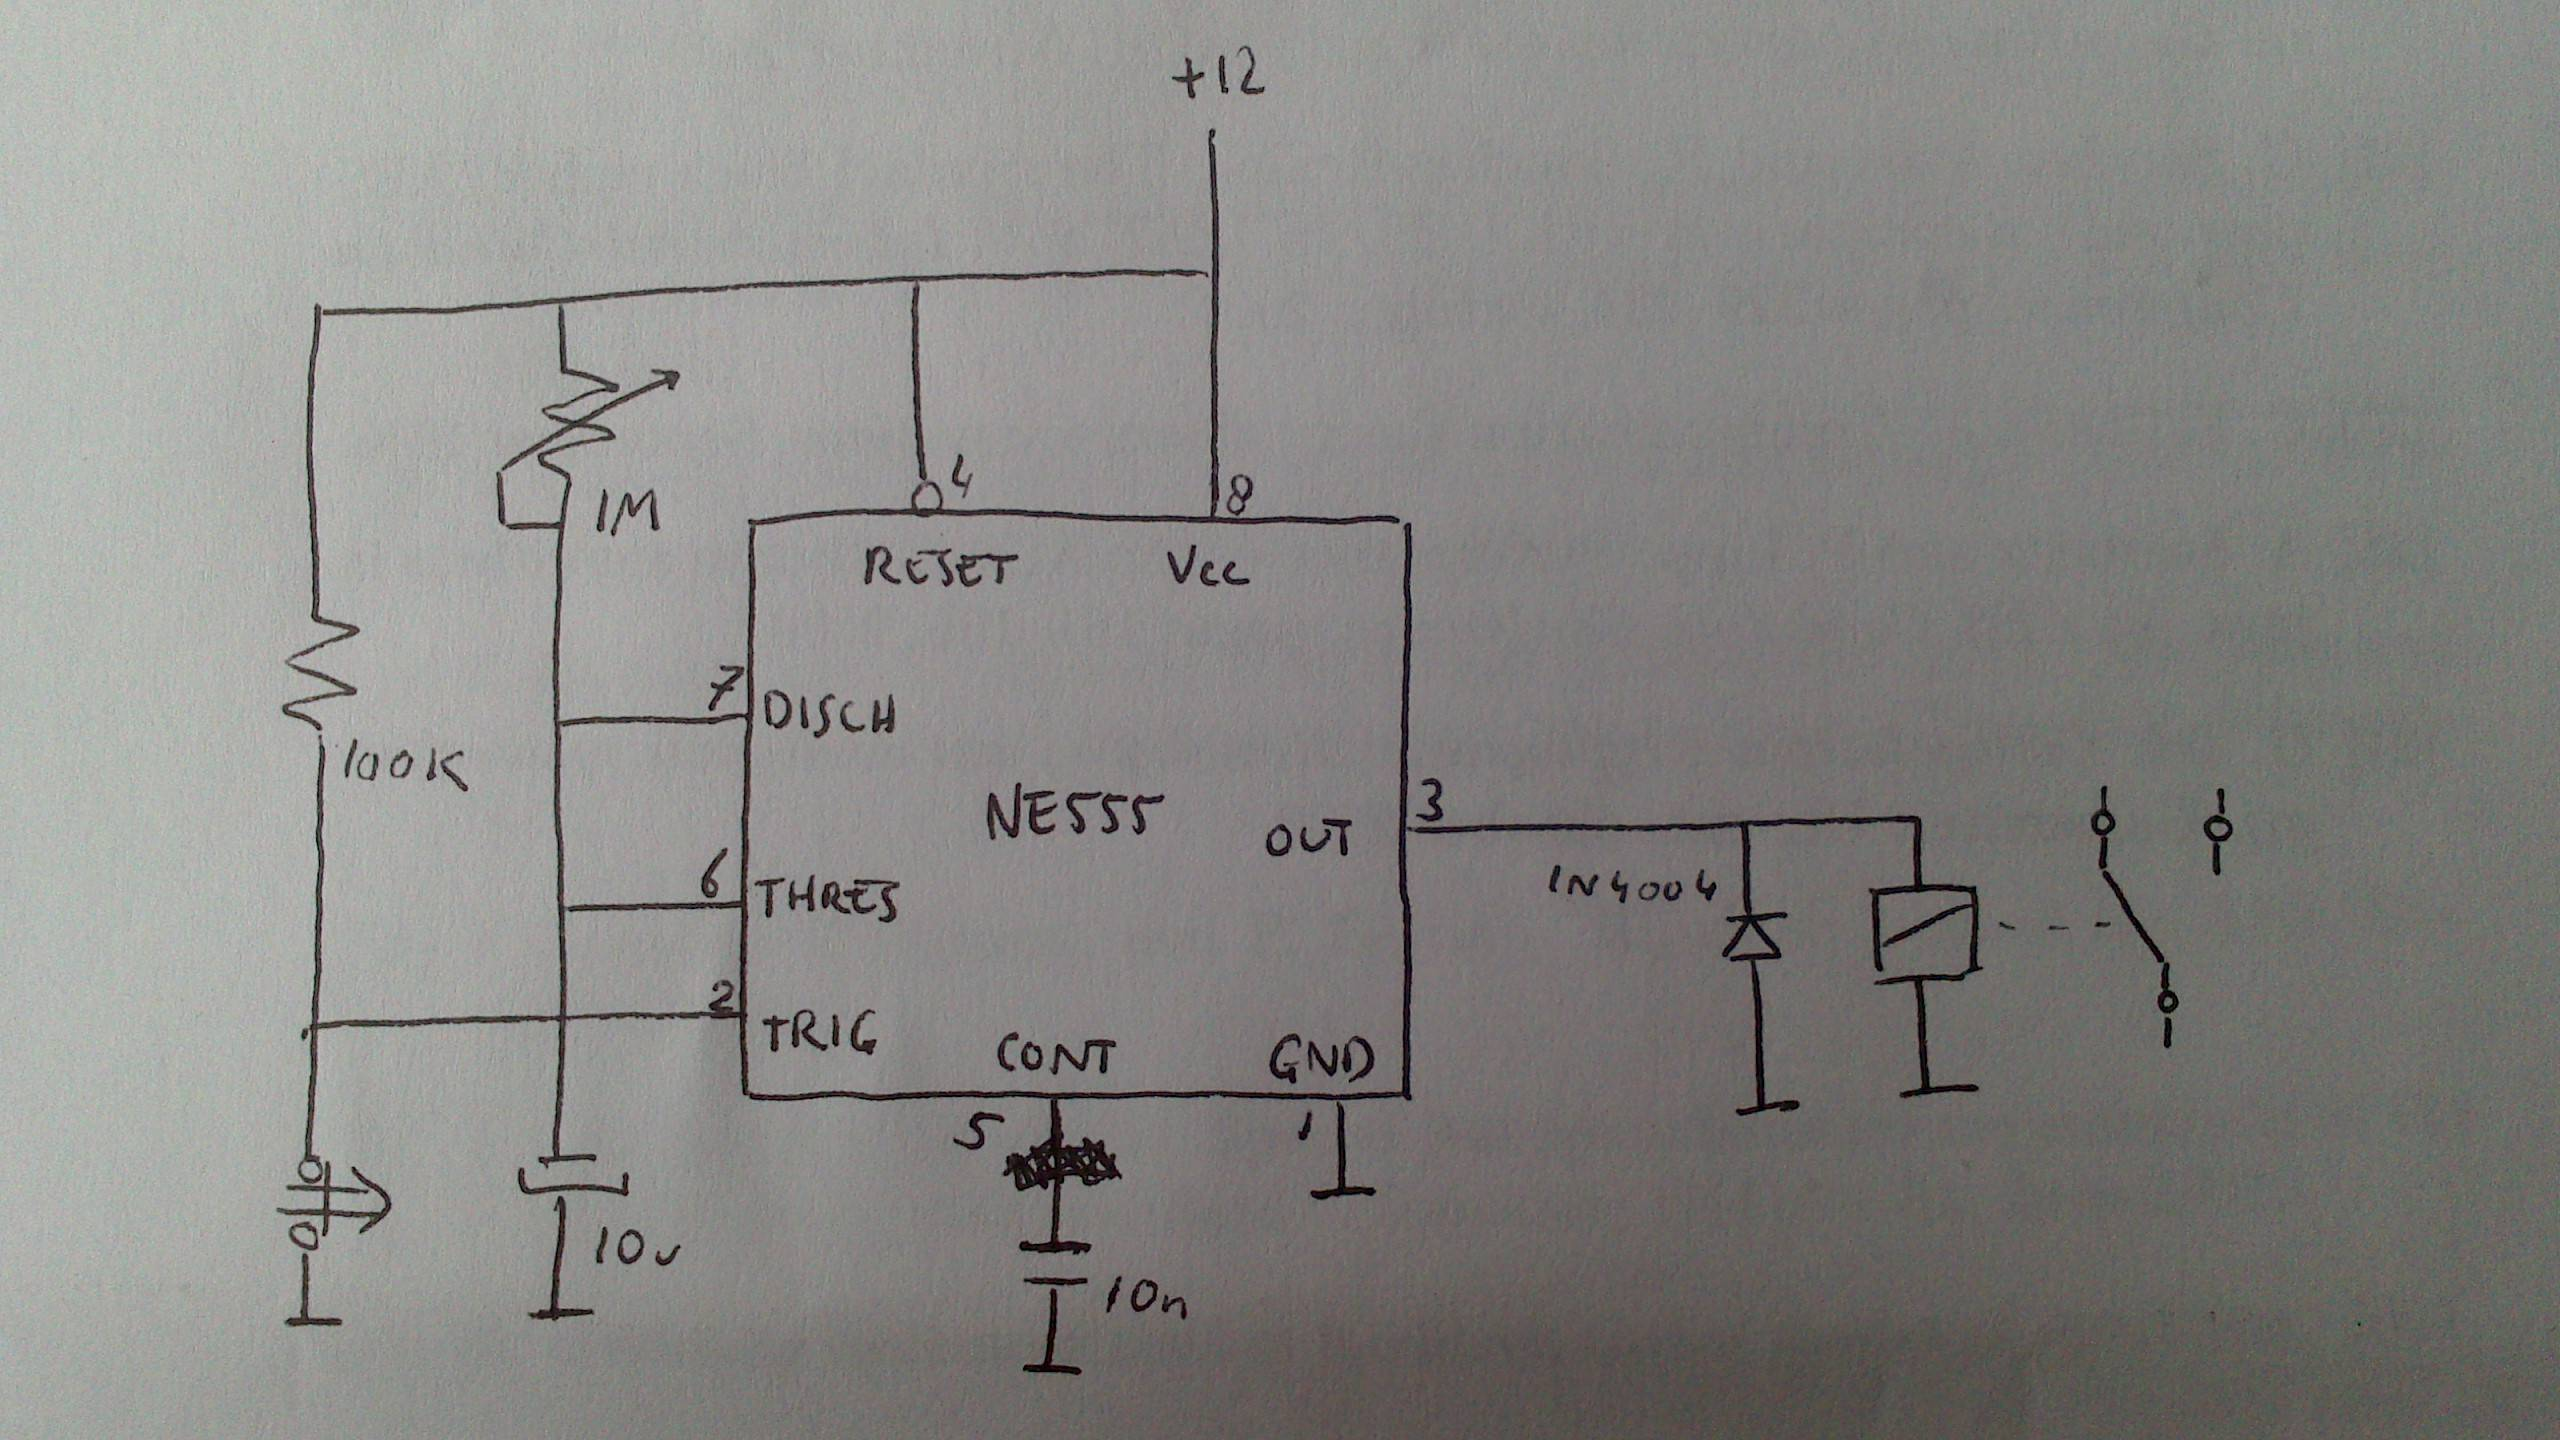 off delay timer wiring diagram 99 jeep grand cherokee limited radio 10 second on time with a potentiometer